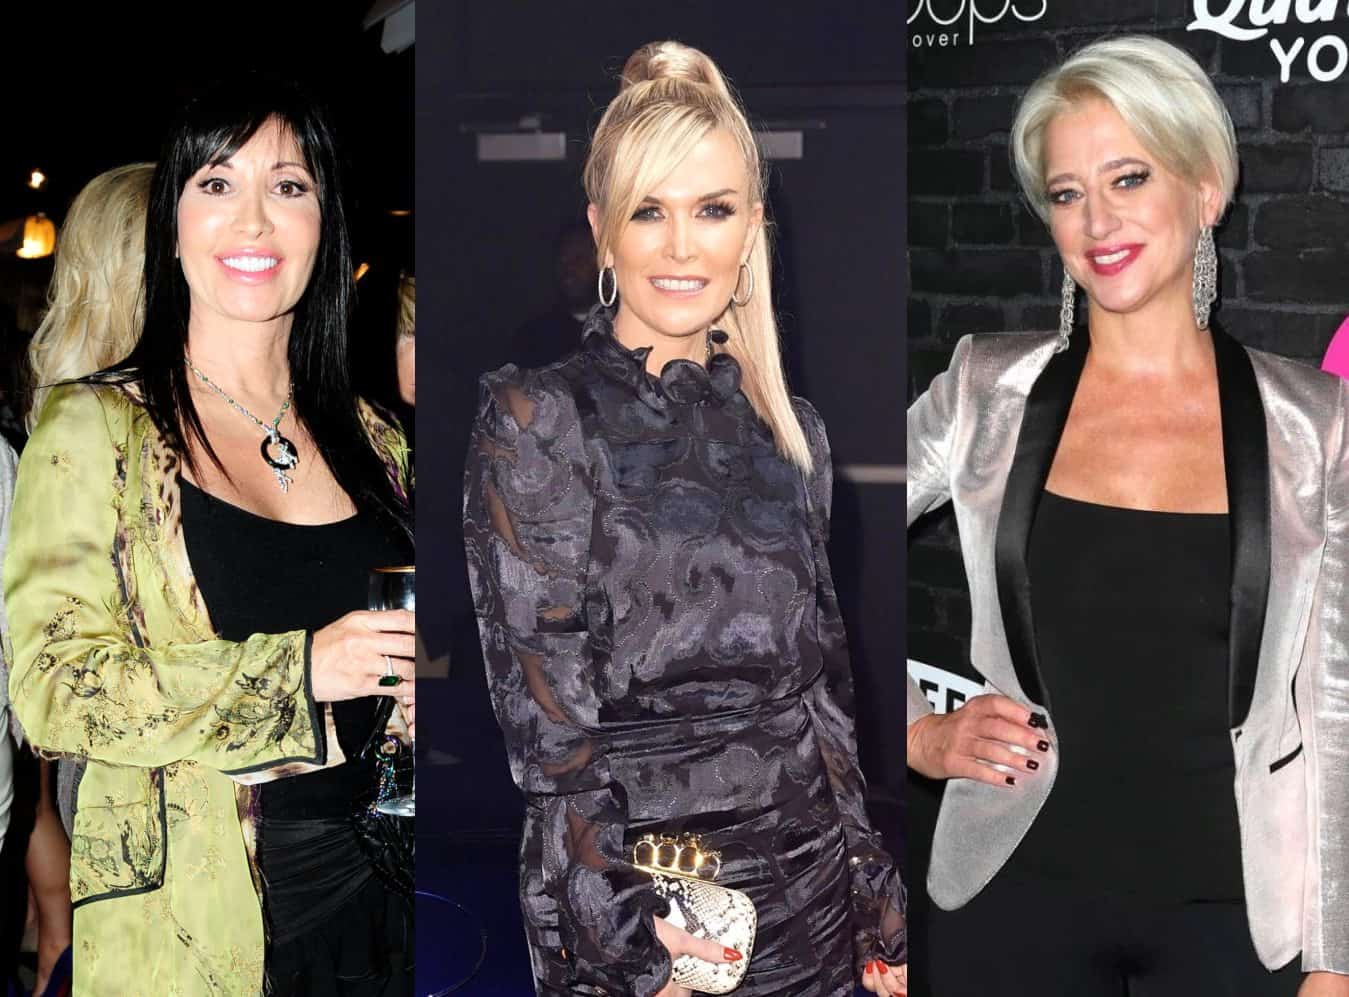 """Elyse Slaine Says RHONY Viewers Didn't See Tinsley Mortimer Provoking Dorinda Medley, Plus She Explains Calling Sonja an """"Accessory"""" and Shares Thoughts on a Full-Time Role"""